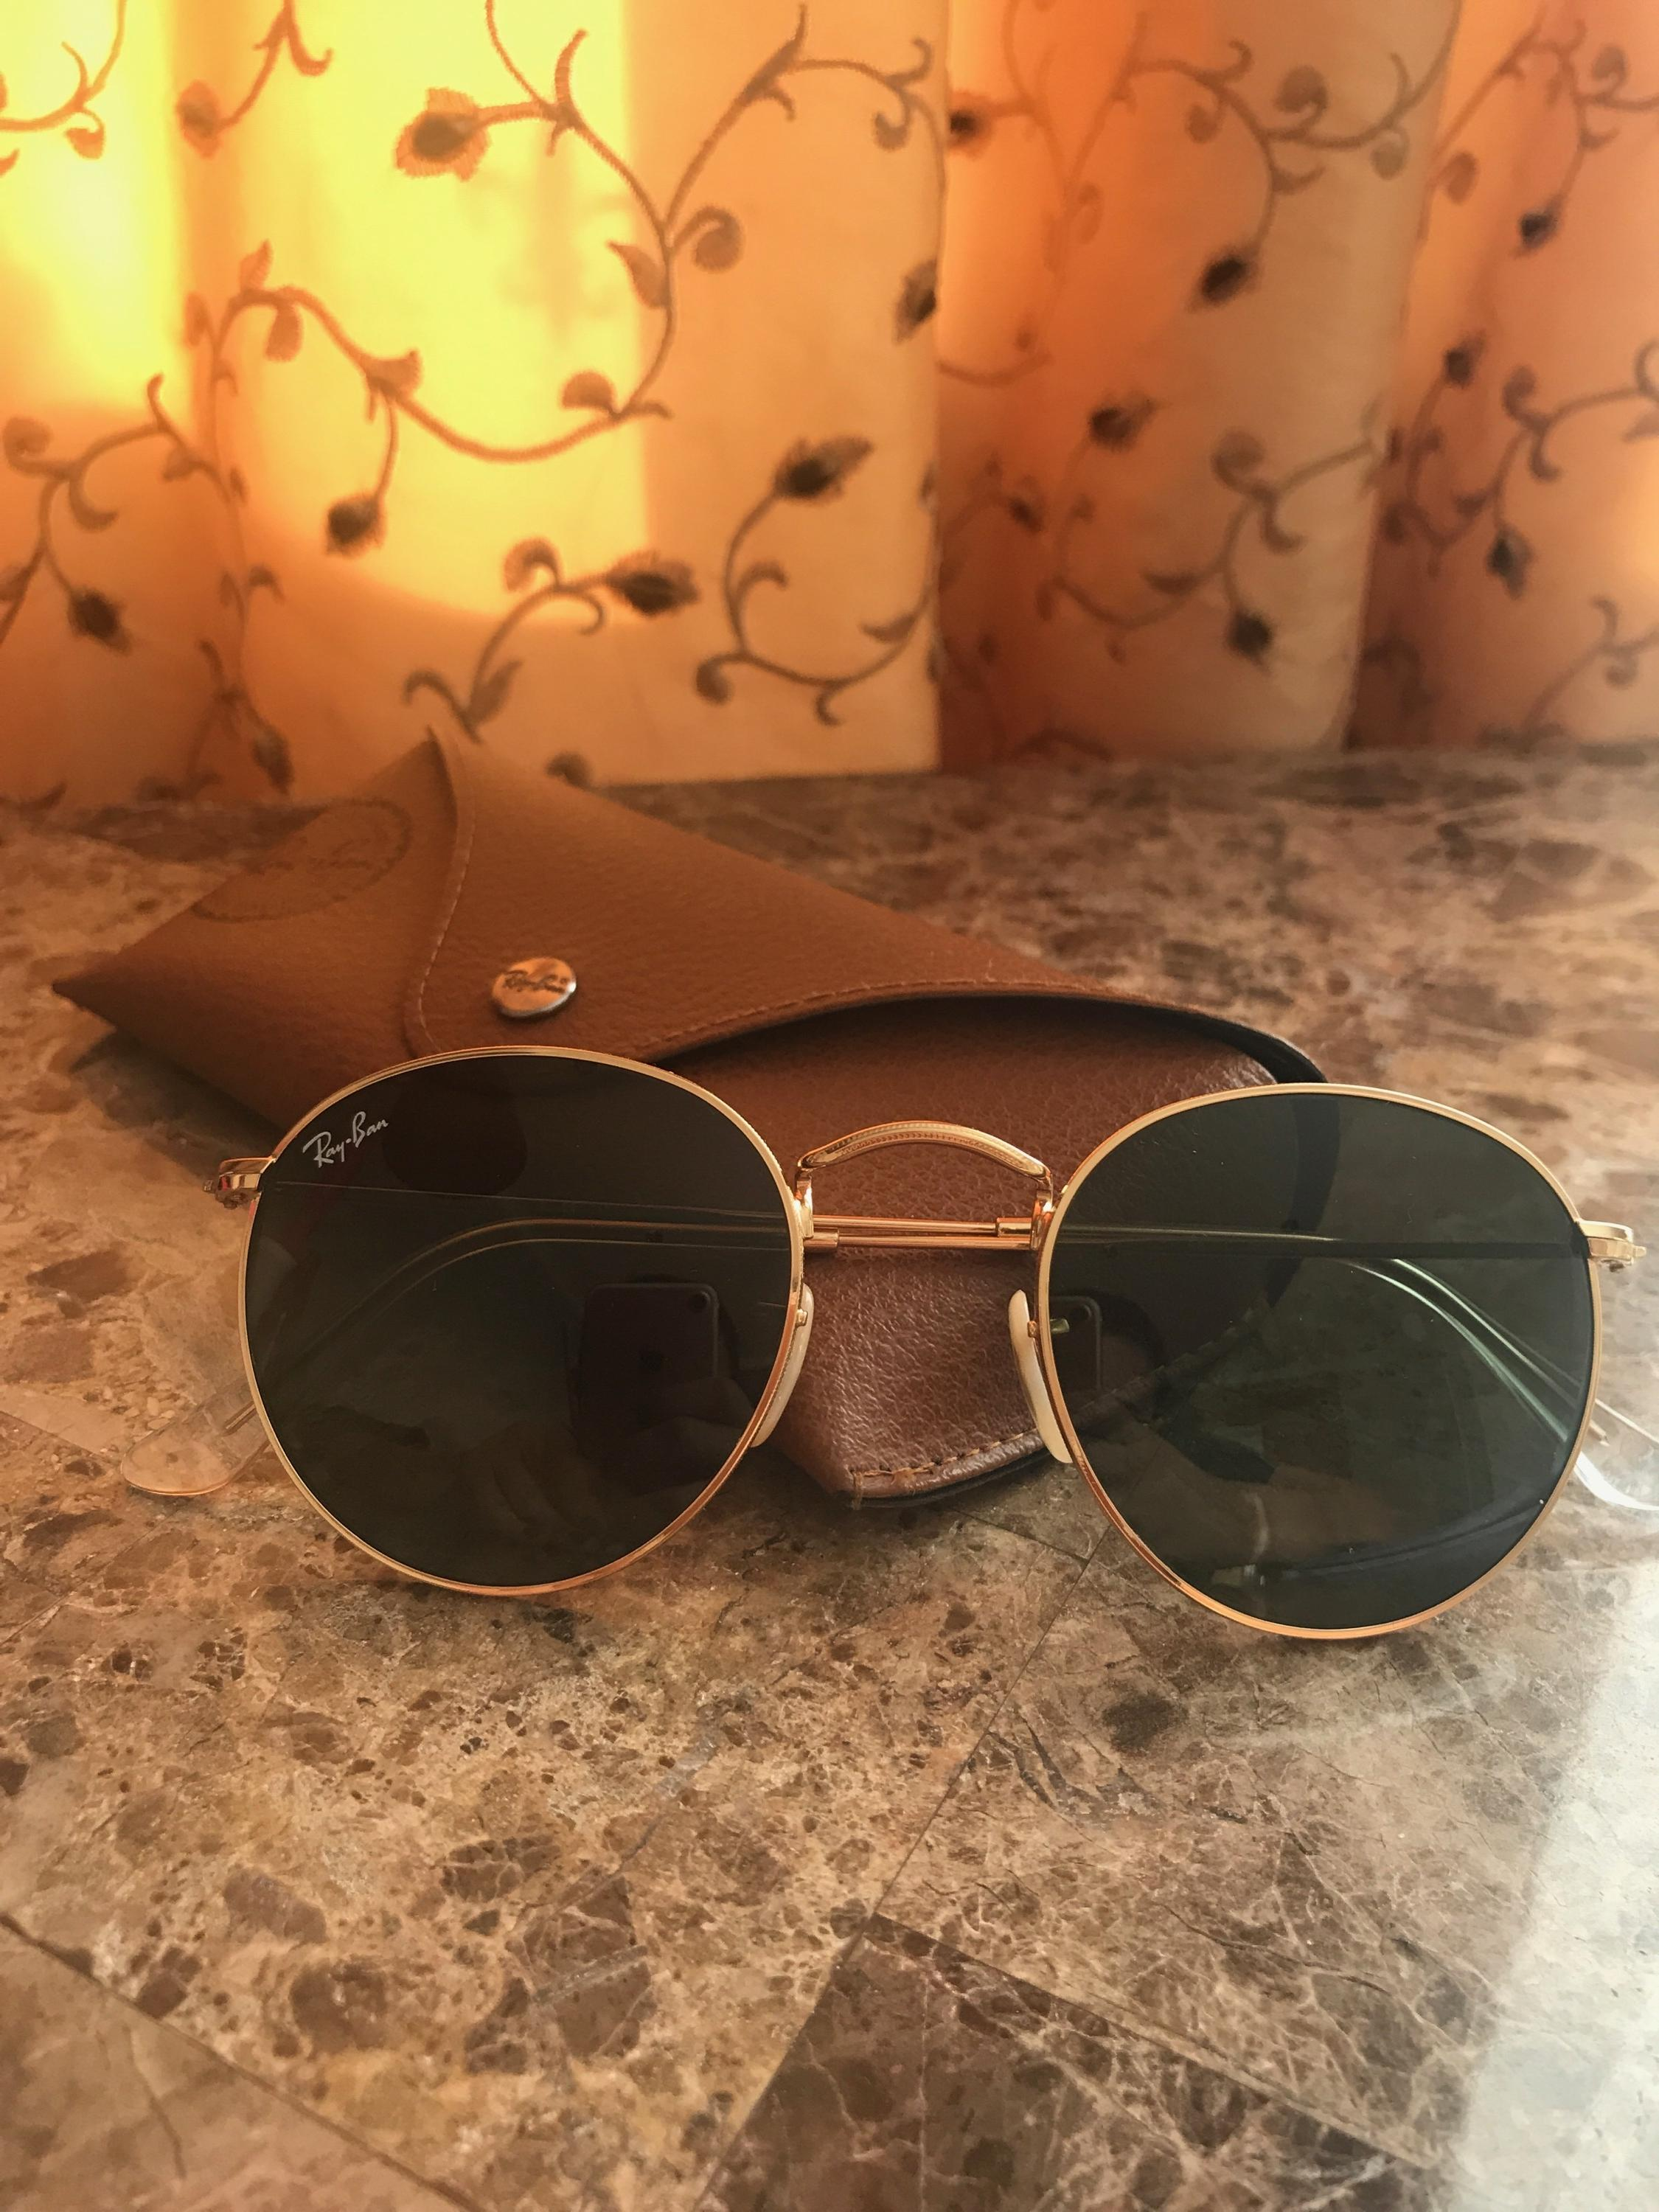 9020b27143e ... where can i buy ray ban green new rb3447 001 50mm round classic g 15  lens